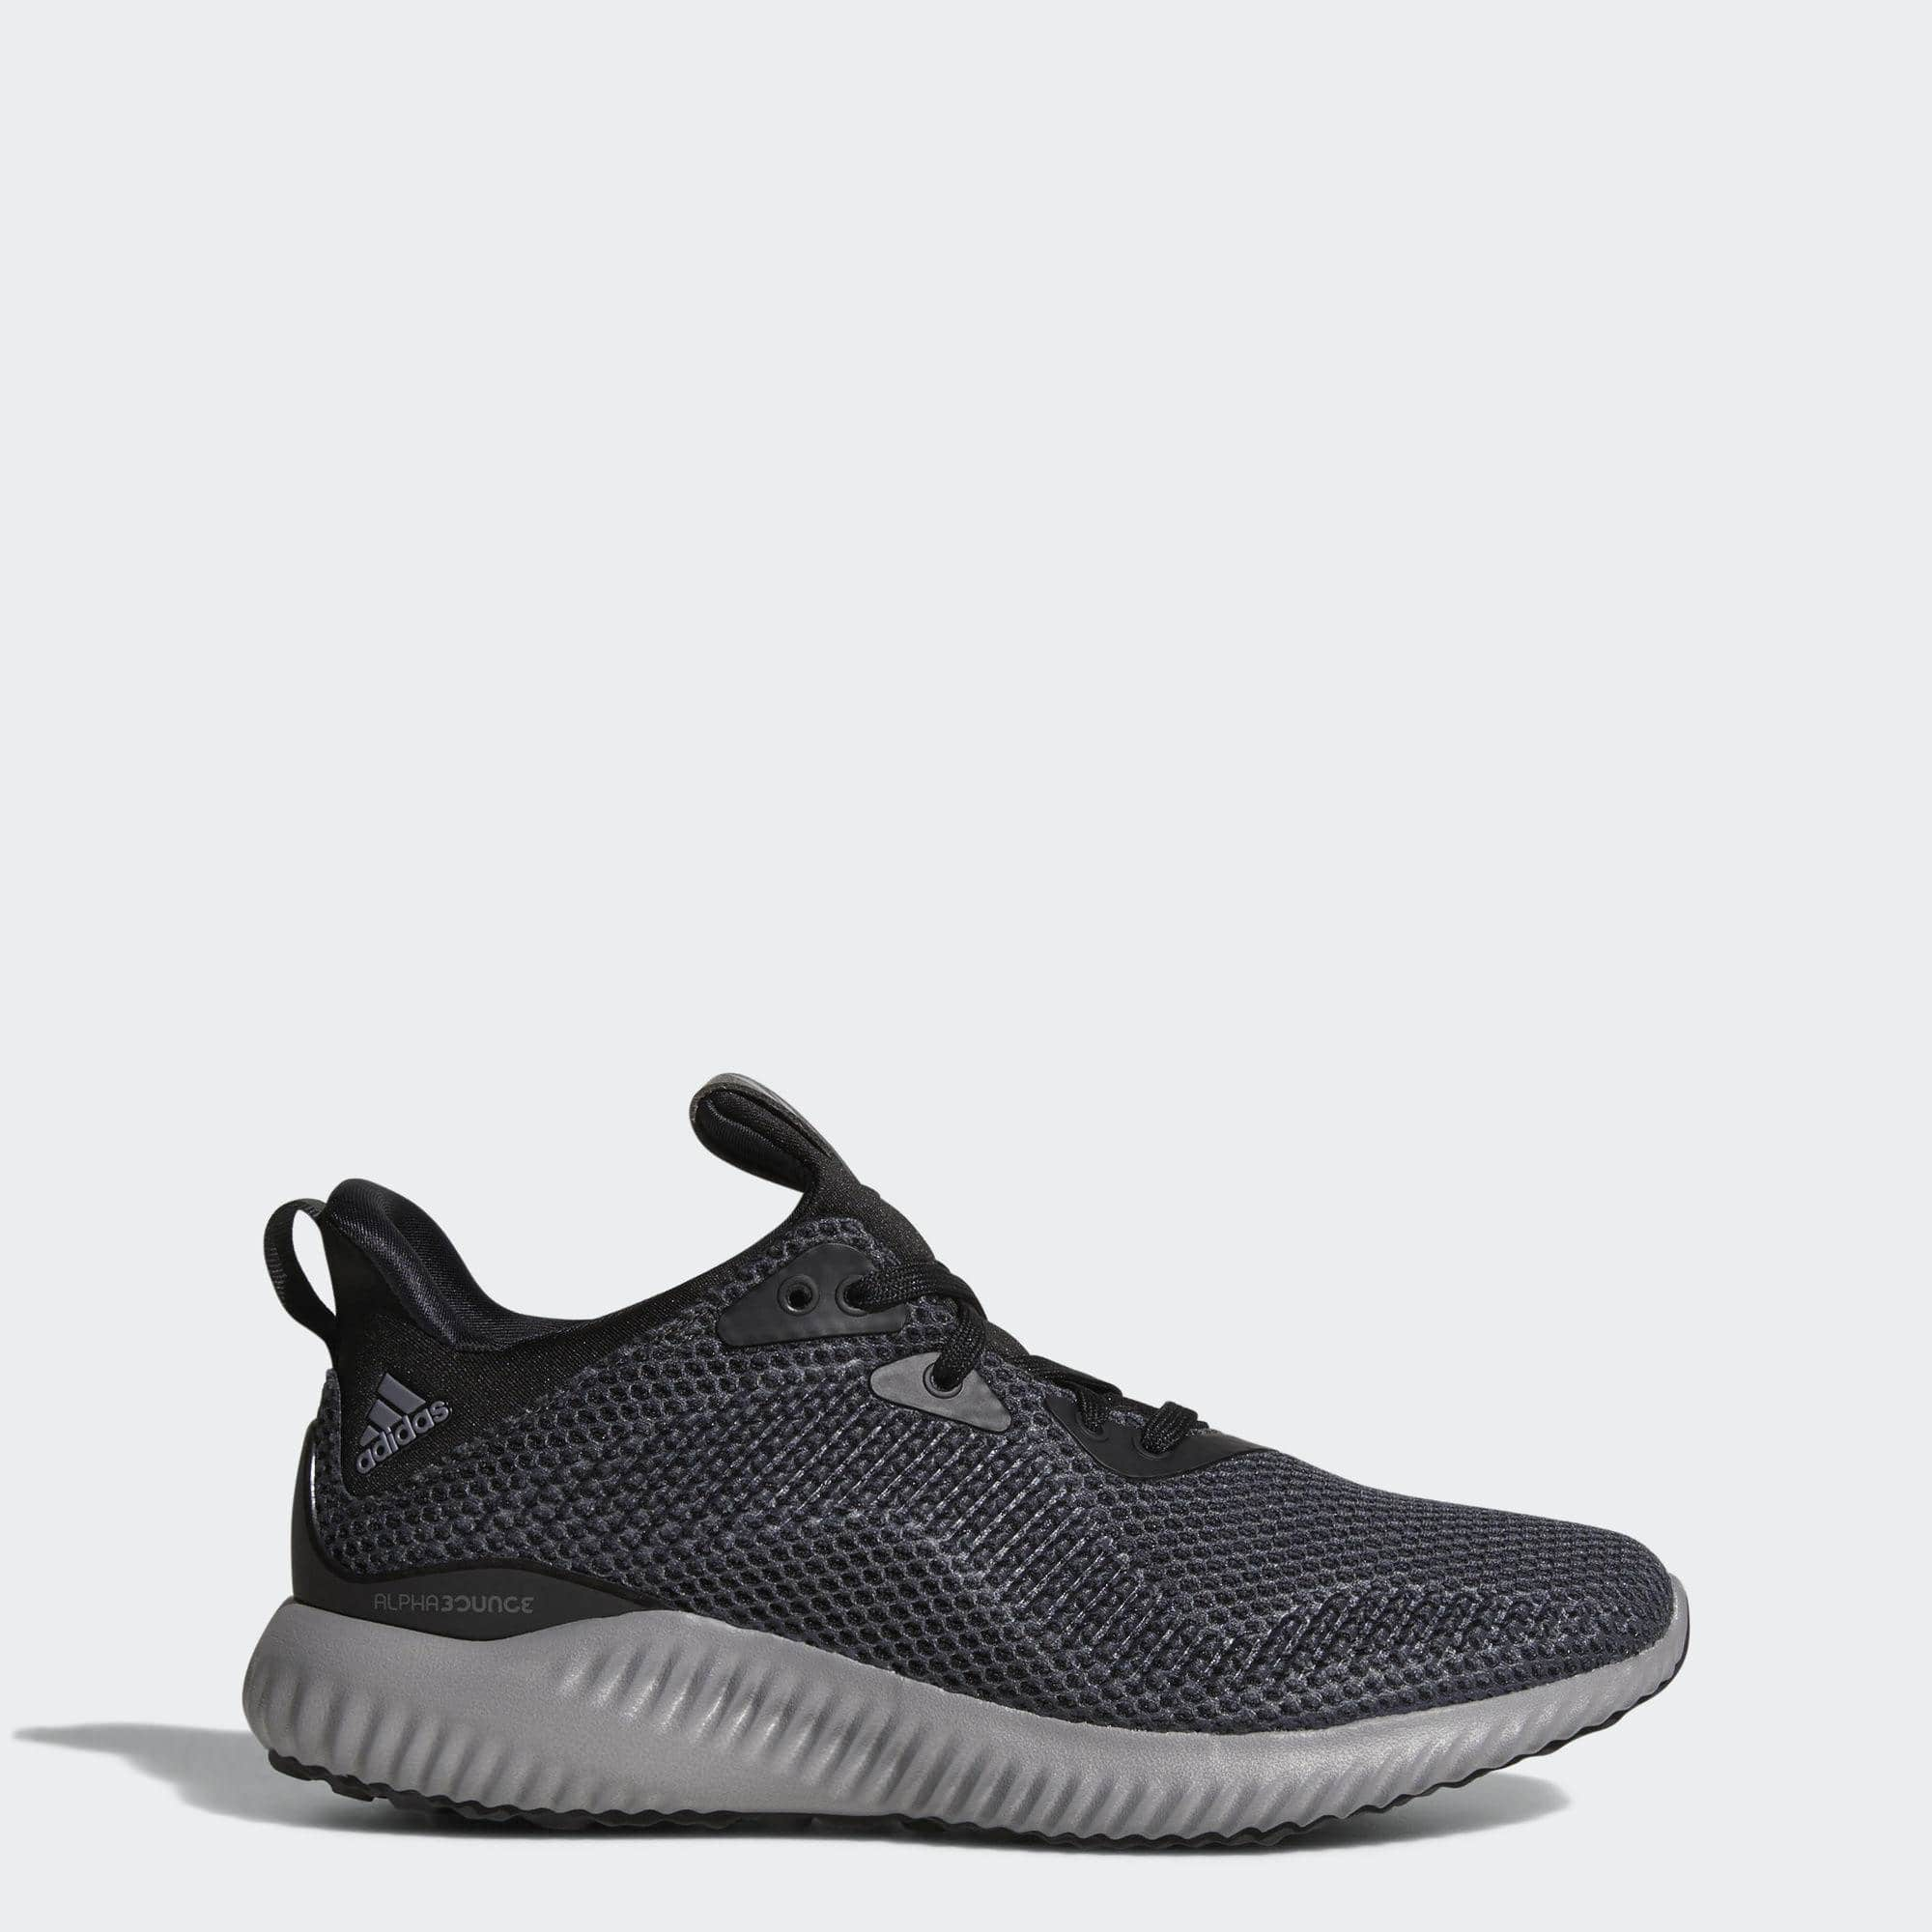 adidas Women's alphabounce Shoes (black) $30, adidas TERREX Climacool Sleek Boat Shoes $22.50, adidas ZX Flux Shoes $22.50 + free shipping